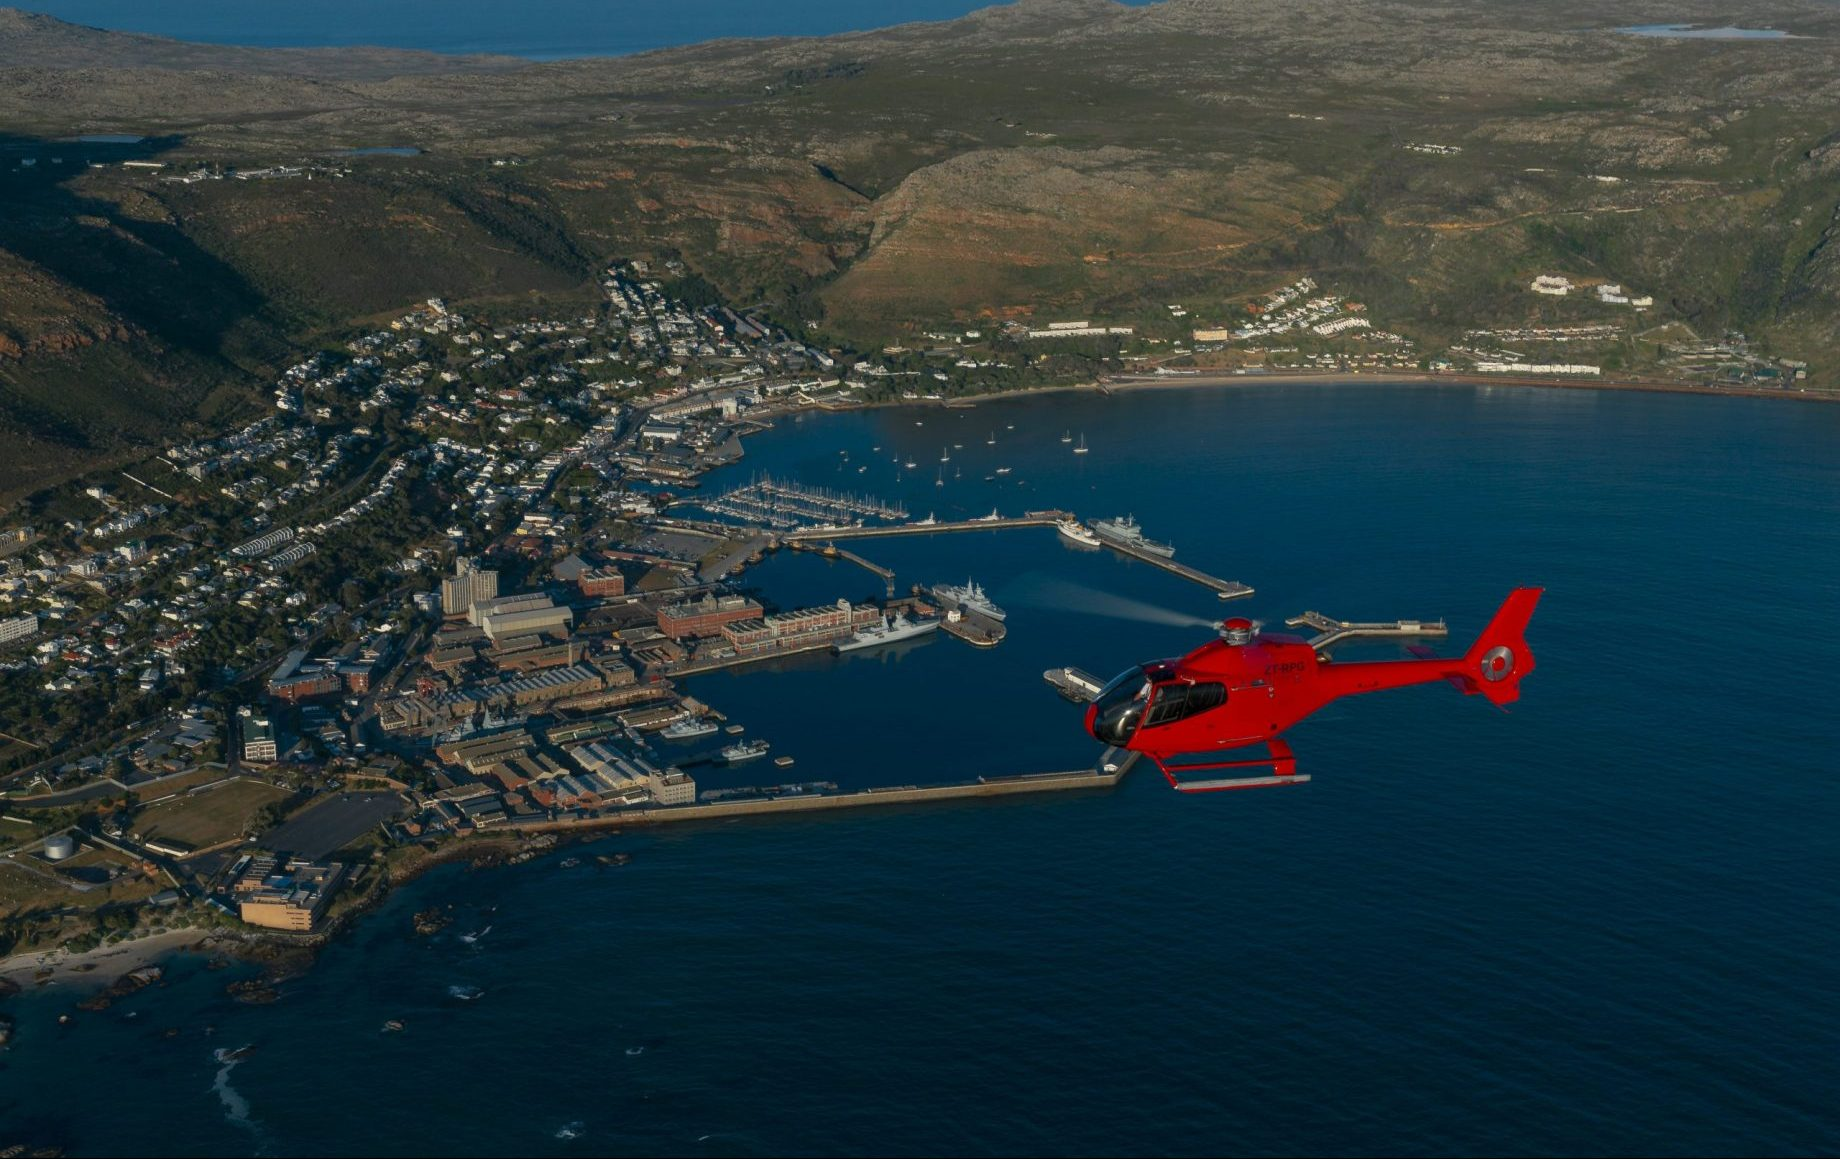 A helicopter hovering over the coast of cape town